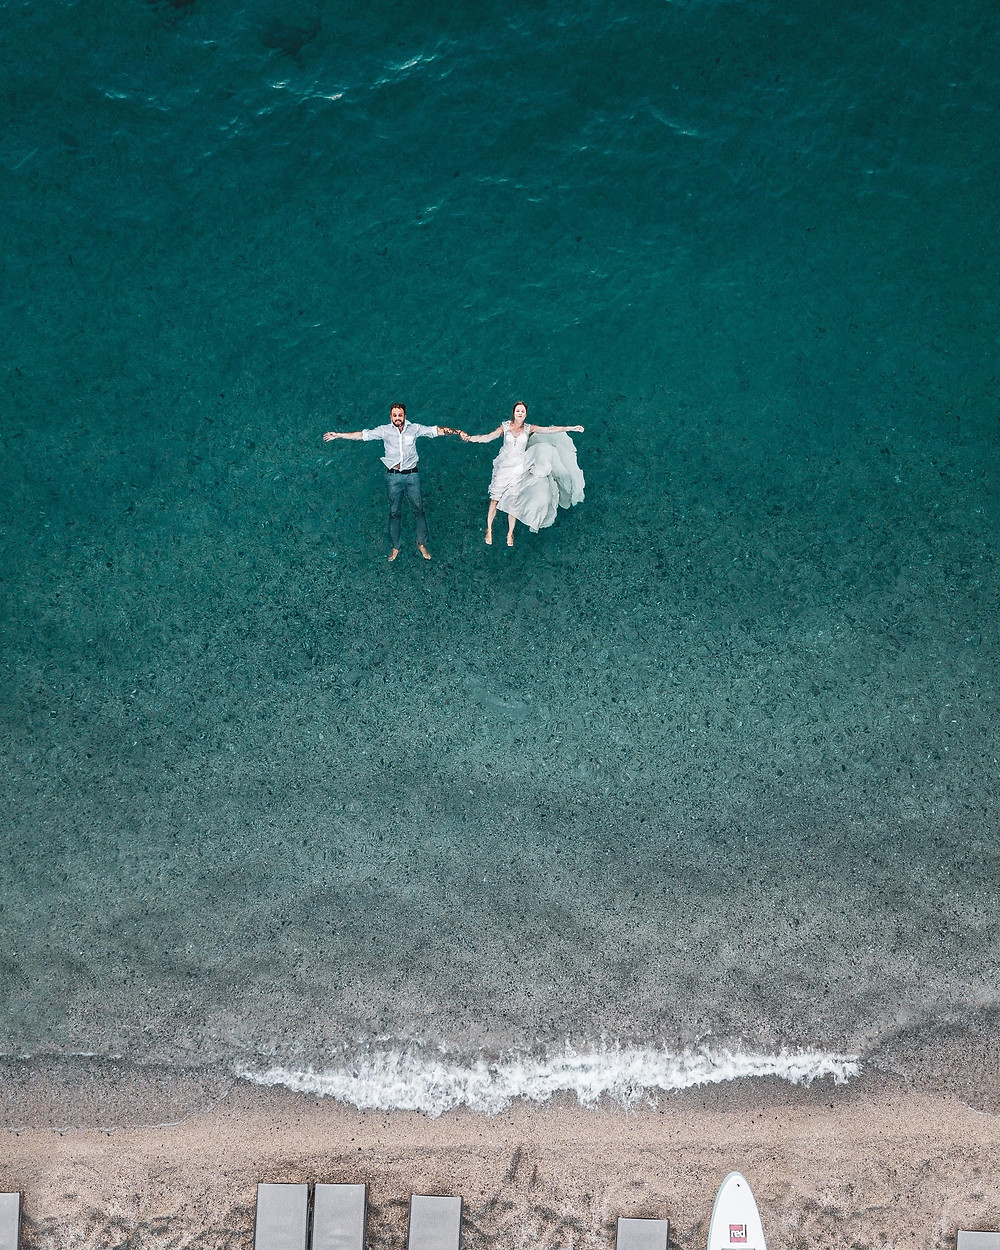 Man and woman floating on blue beach wedding picture.